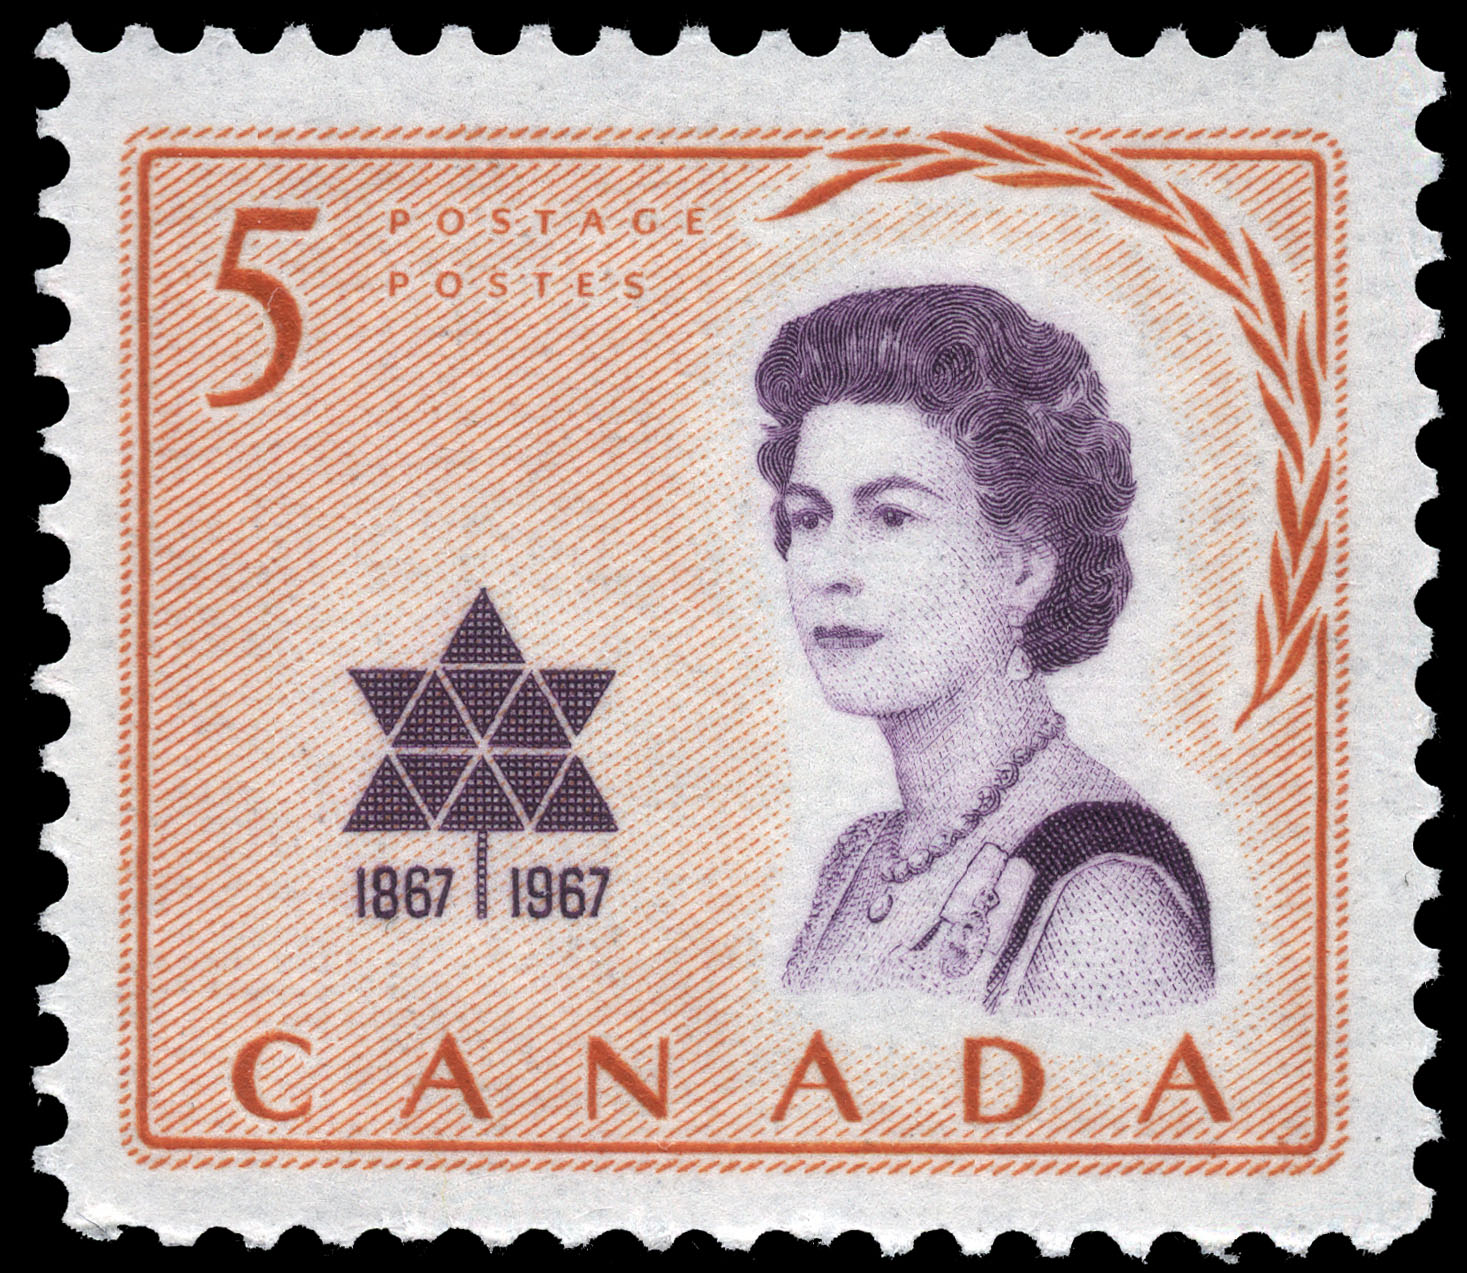 Royal Visit, 1967 Canada Postage Stamp